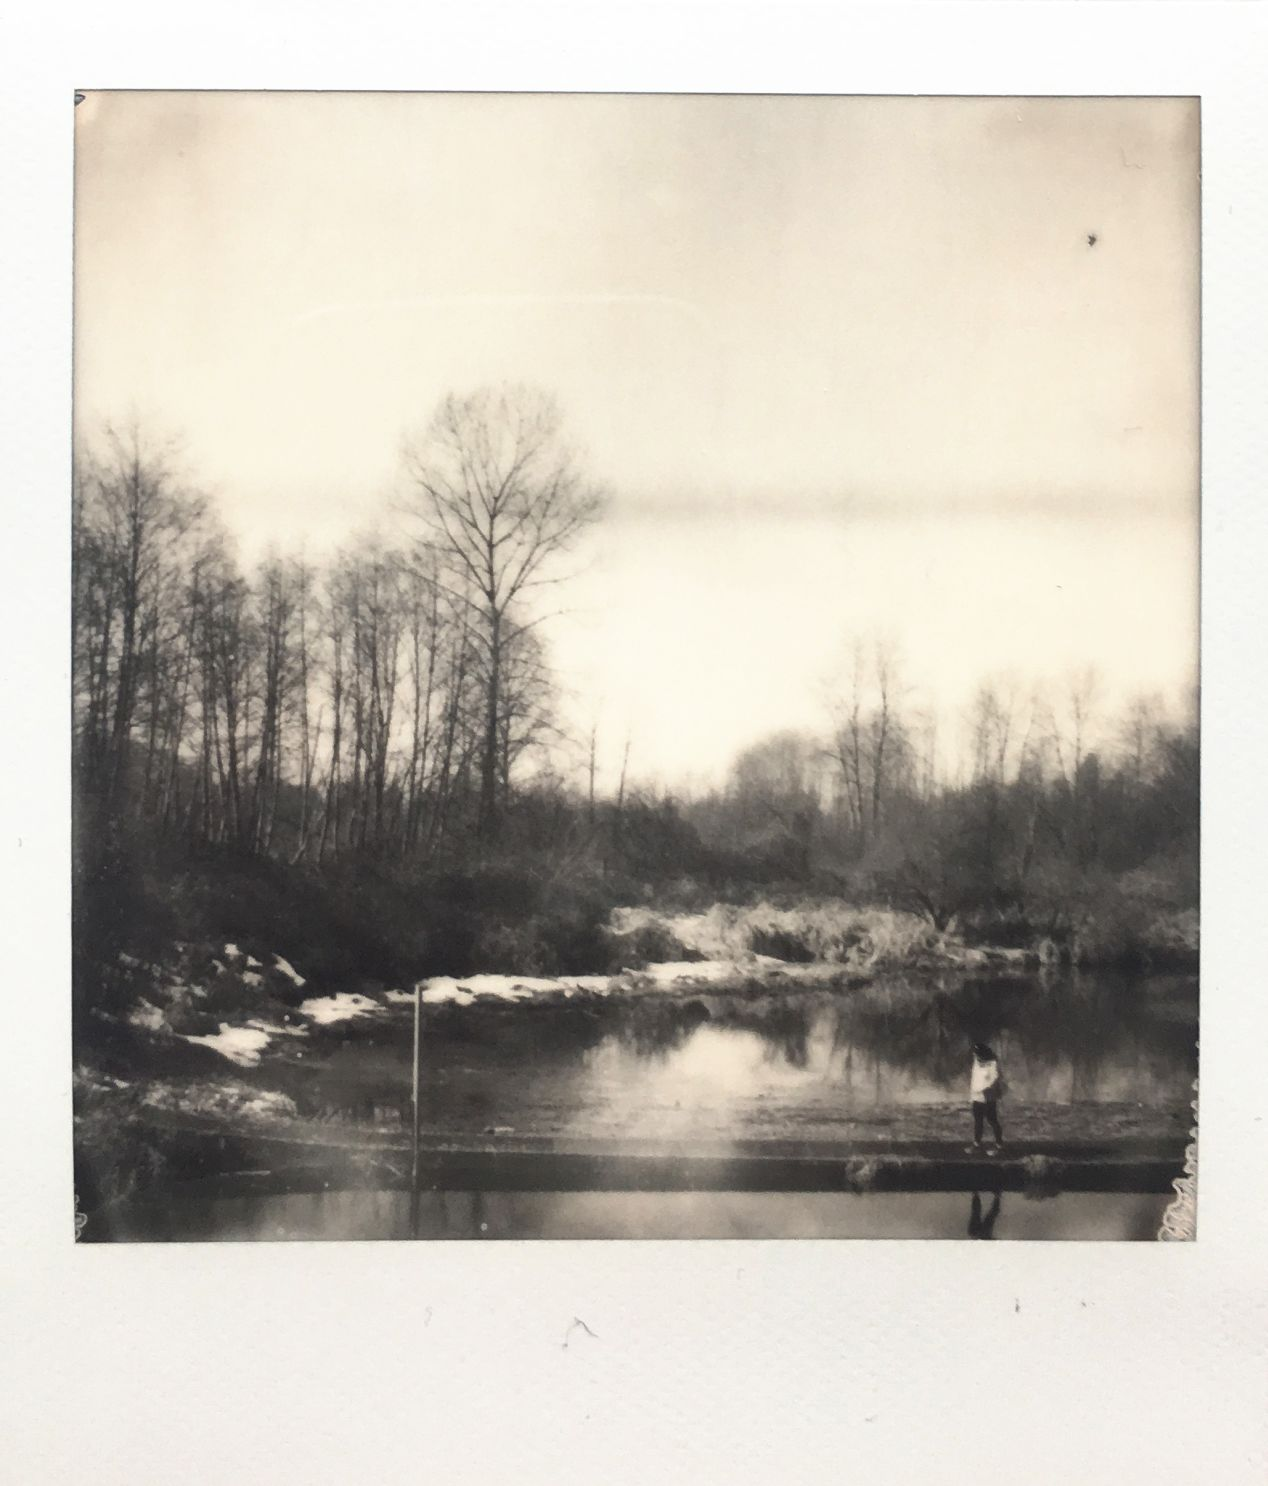 Taken on a $19 Polaroid SX-70 with film costing about $2³⁷ per frame.